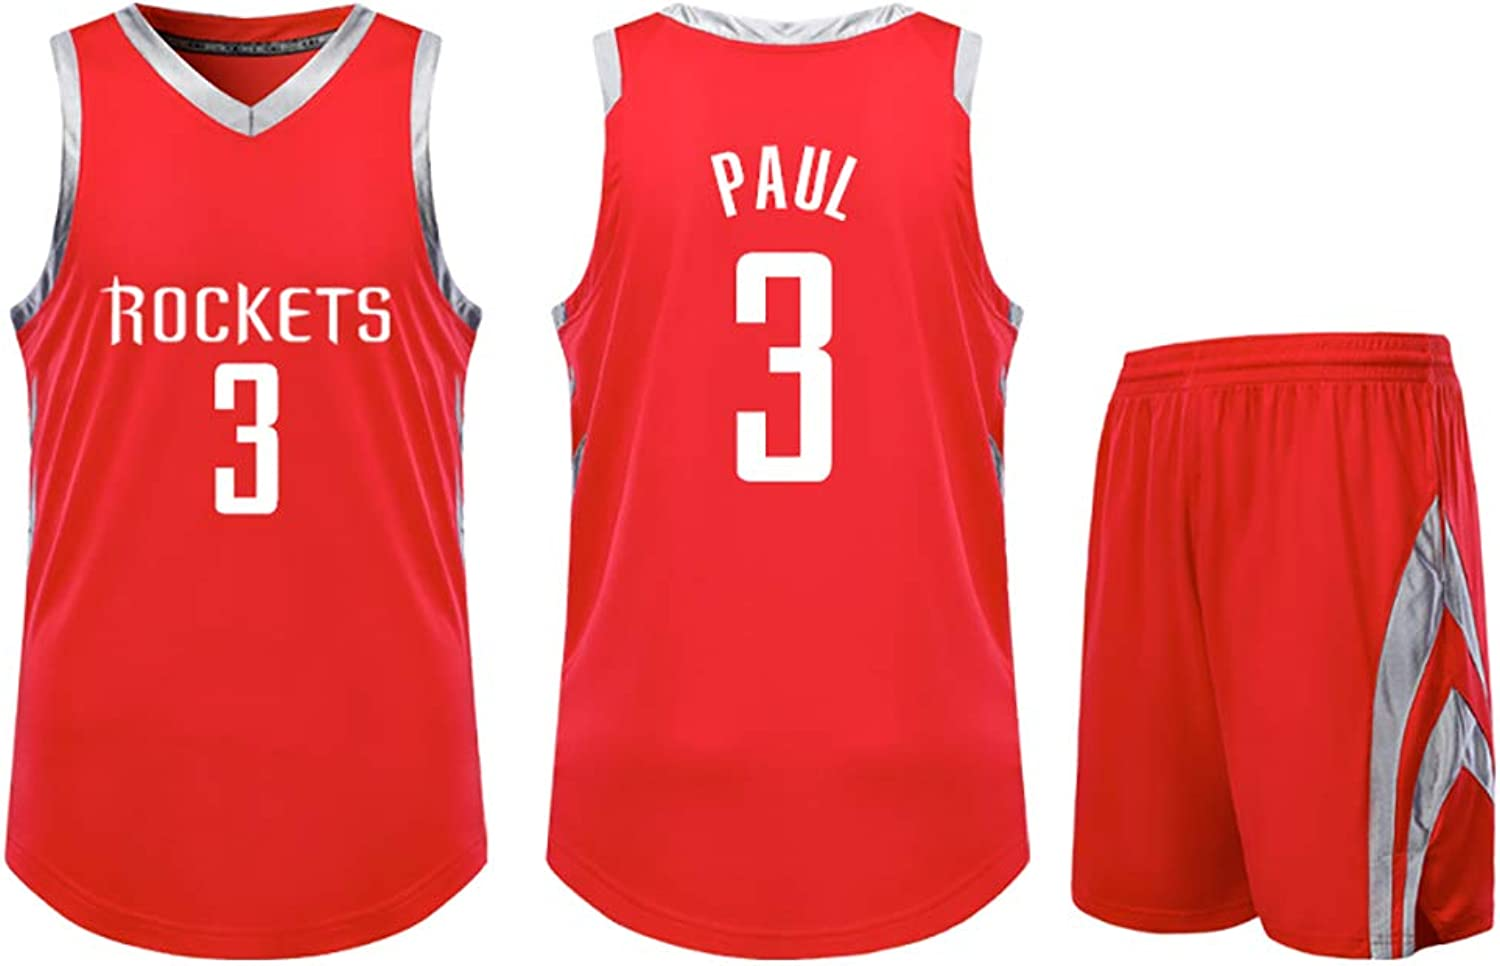 NB Paul  3 Jersey  Classic Sleeveless Set,James A Jersey, Men's Basketball and Unisex Basket Set TShirt WYTIAO